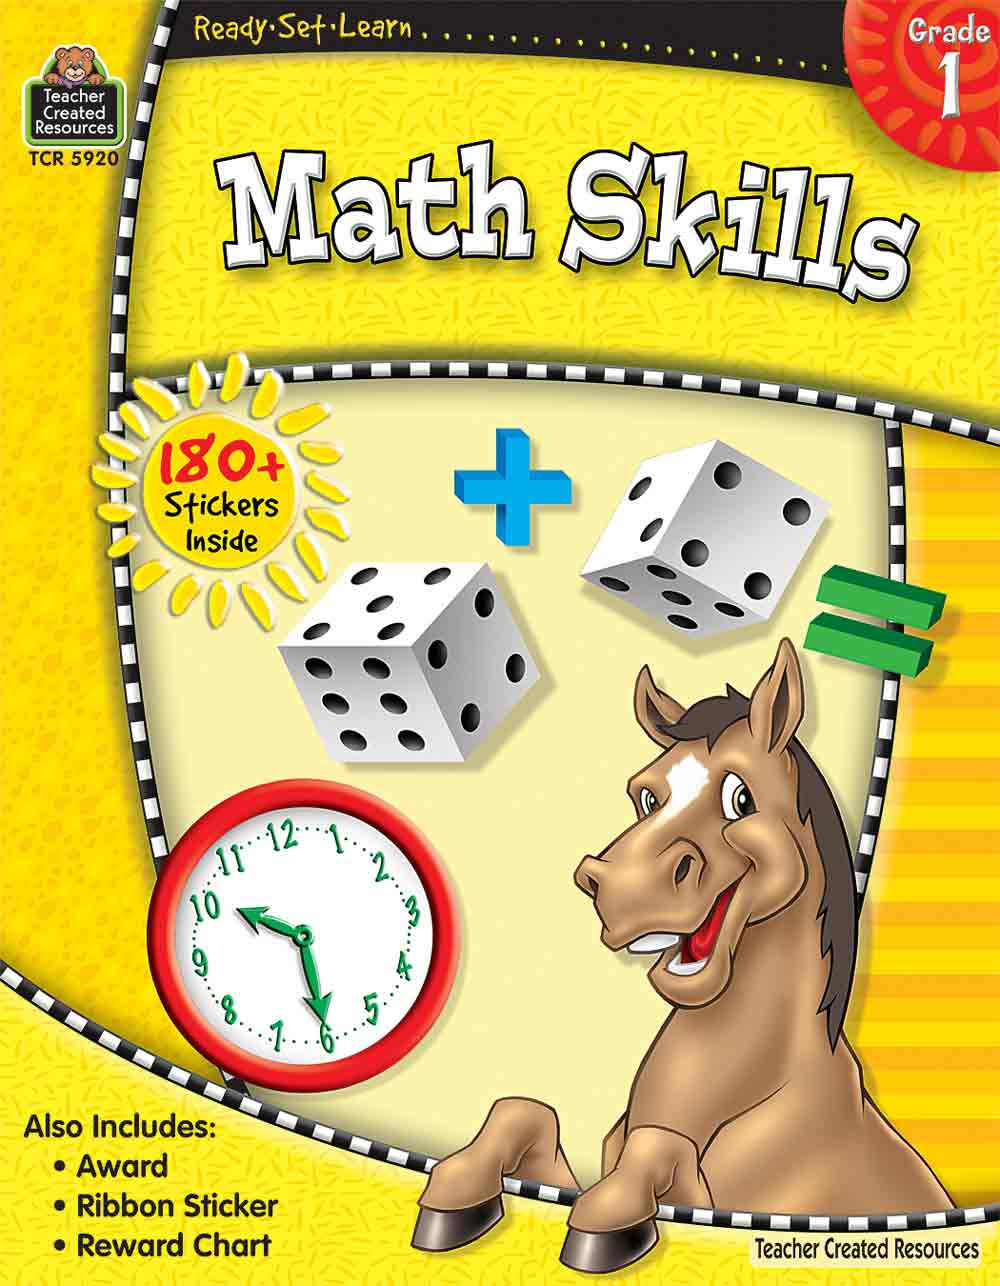 Ready-Set-Learn: Math Skills Grade 1 - Teacher Created Resources